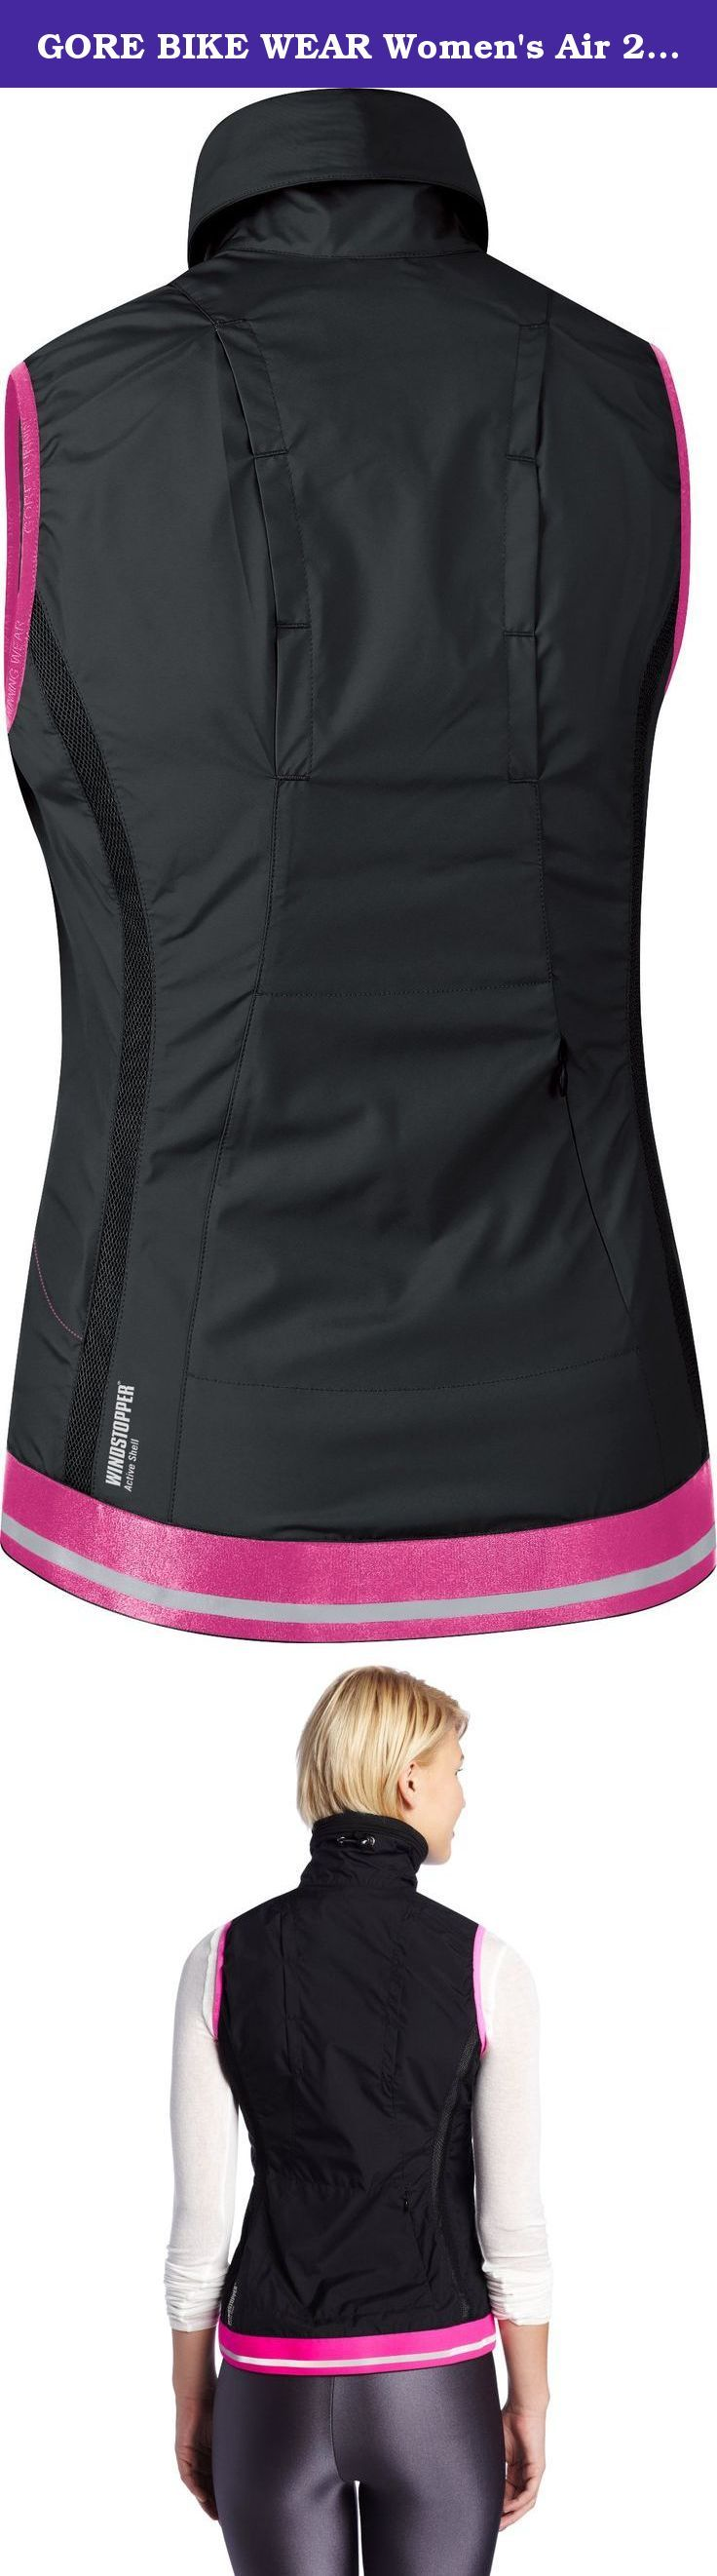 GORE BIKE WEAR Women's Air 2.0 Windstopper Active Shell Vest, Black/Hot Pink, Medium. WINDSTOPPER® Active Shell slim feminine cut and less is more designed lady's vest. A bit larger pockets for the lady's smart phone, keys and accessories.